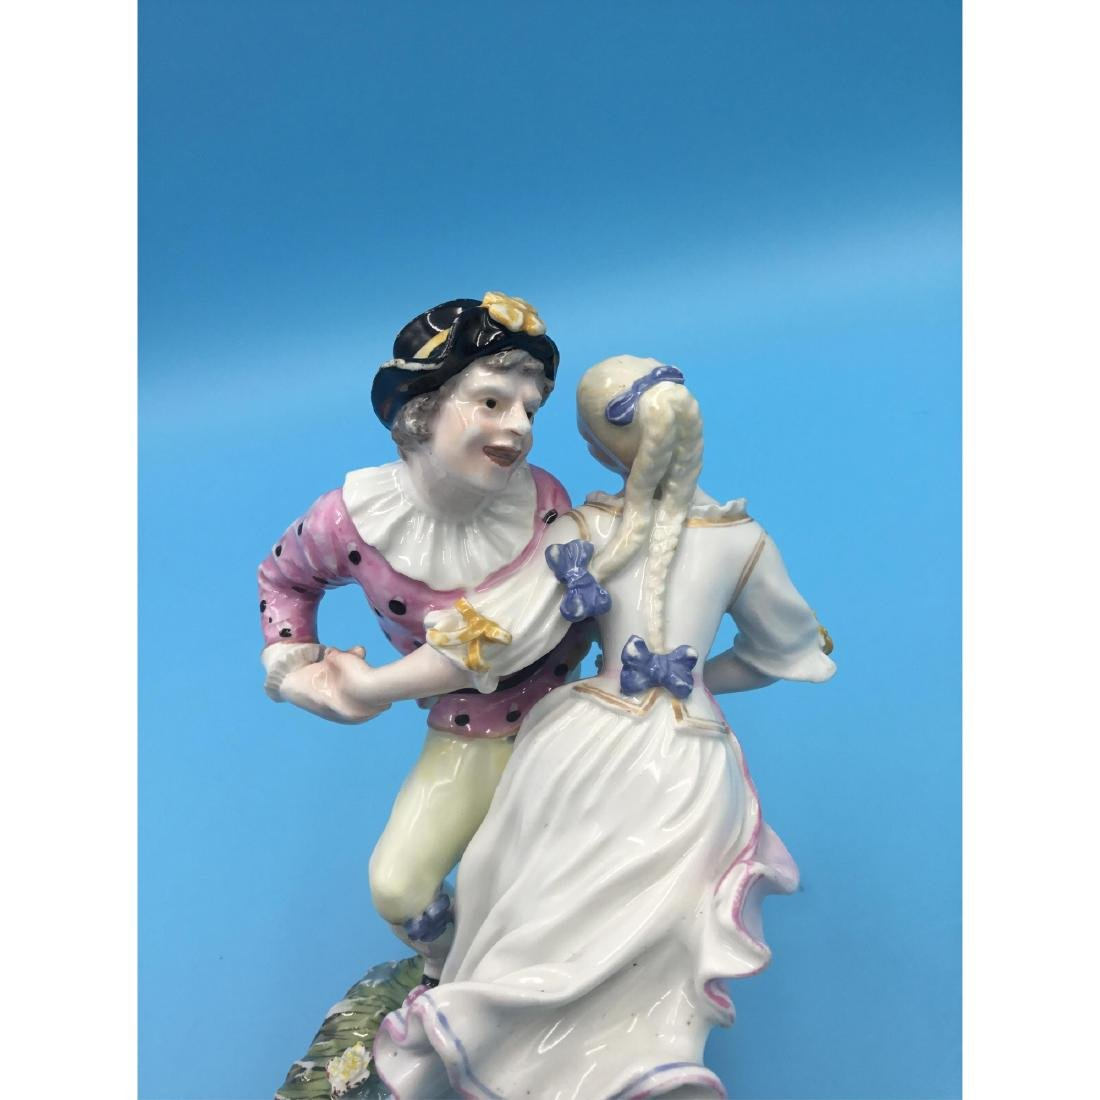 HOCHST 18TH C GERMAN PORCELAIN GROUP FIGURINE - 6